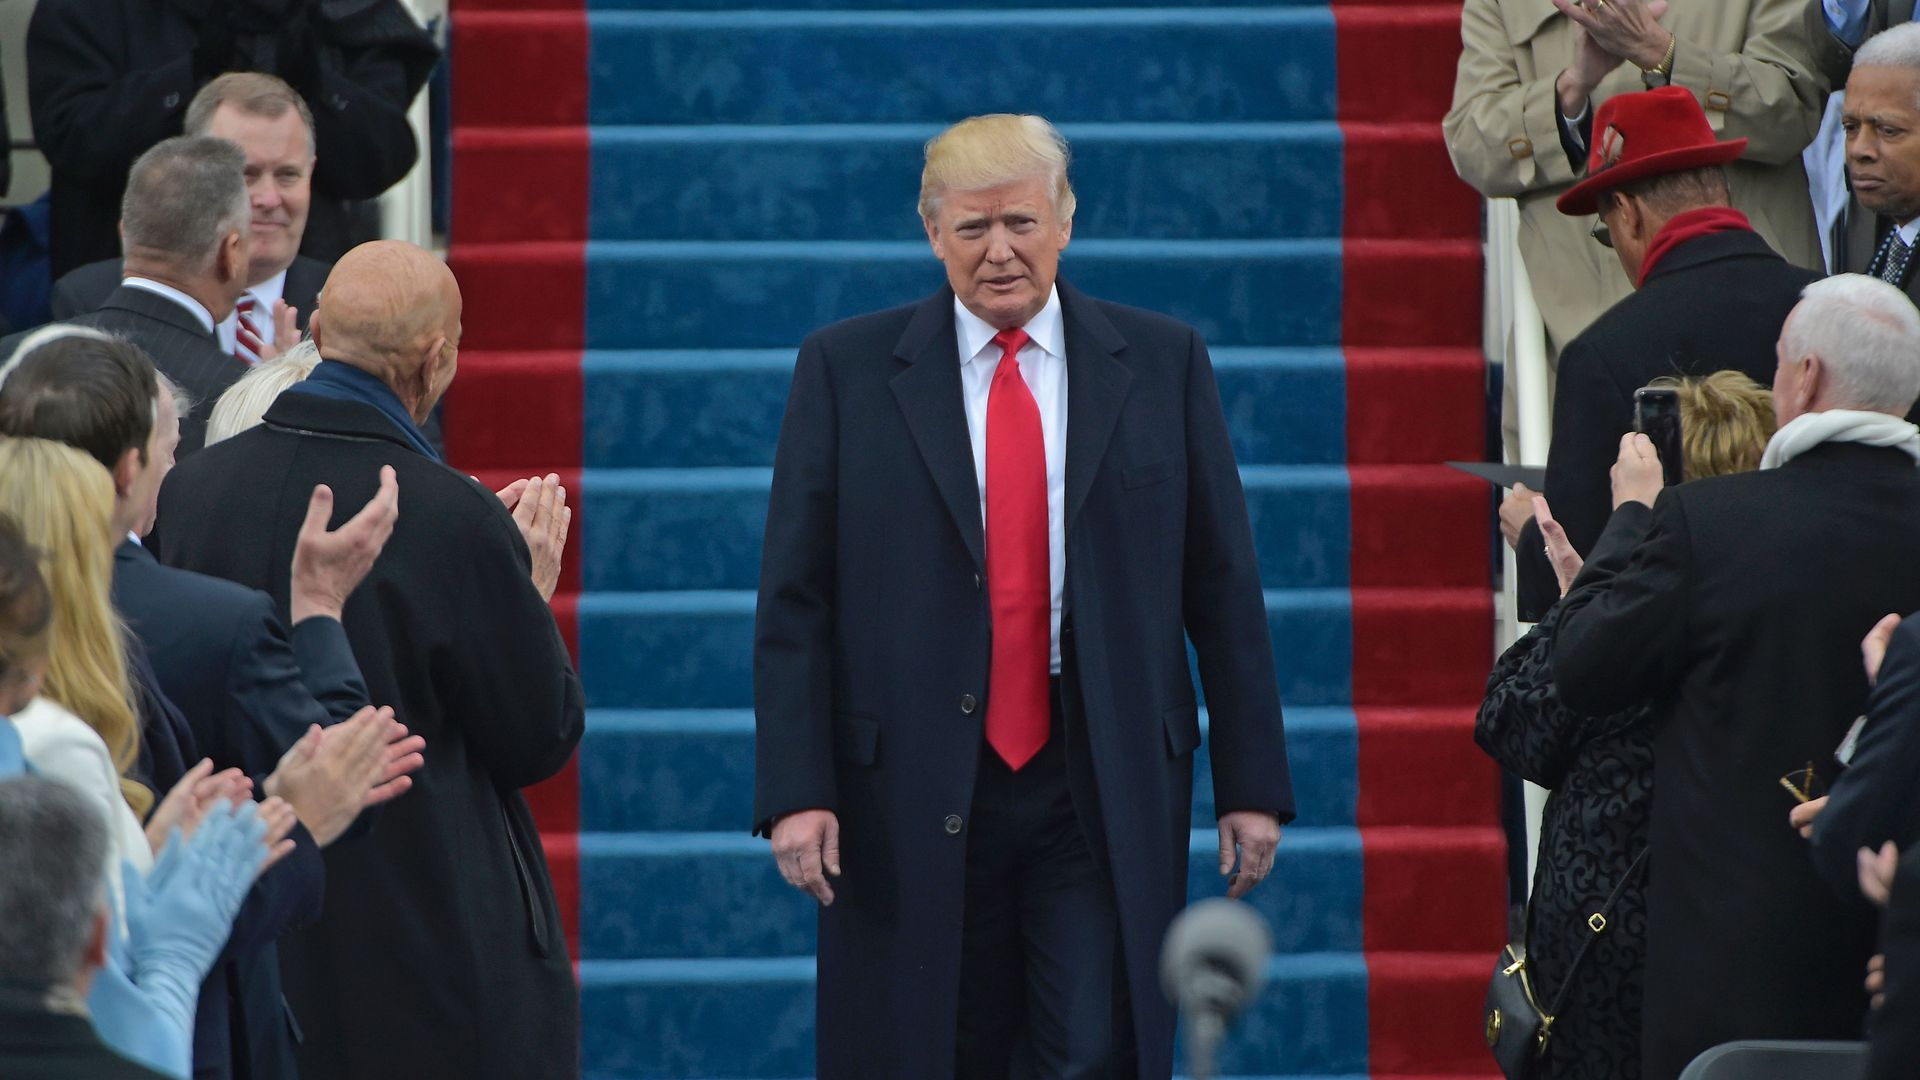 President Donald Trump during his swearing-in ceremony in 2017.